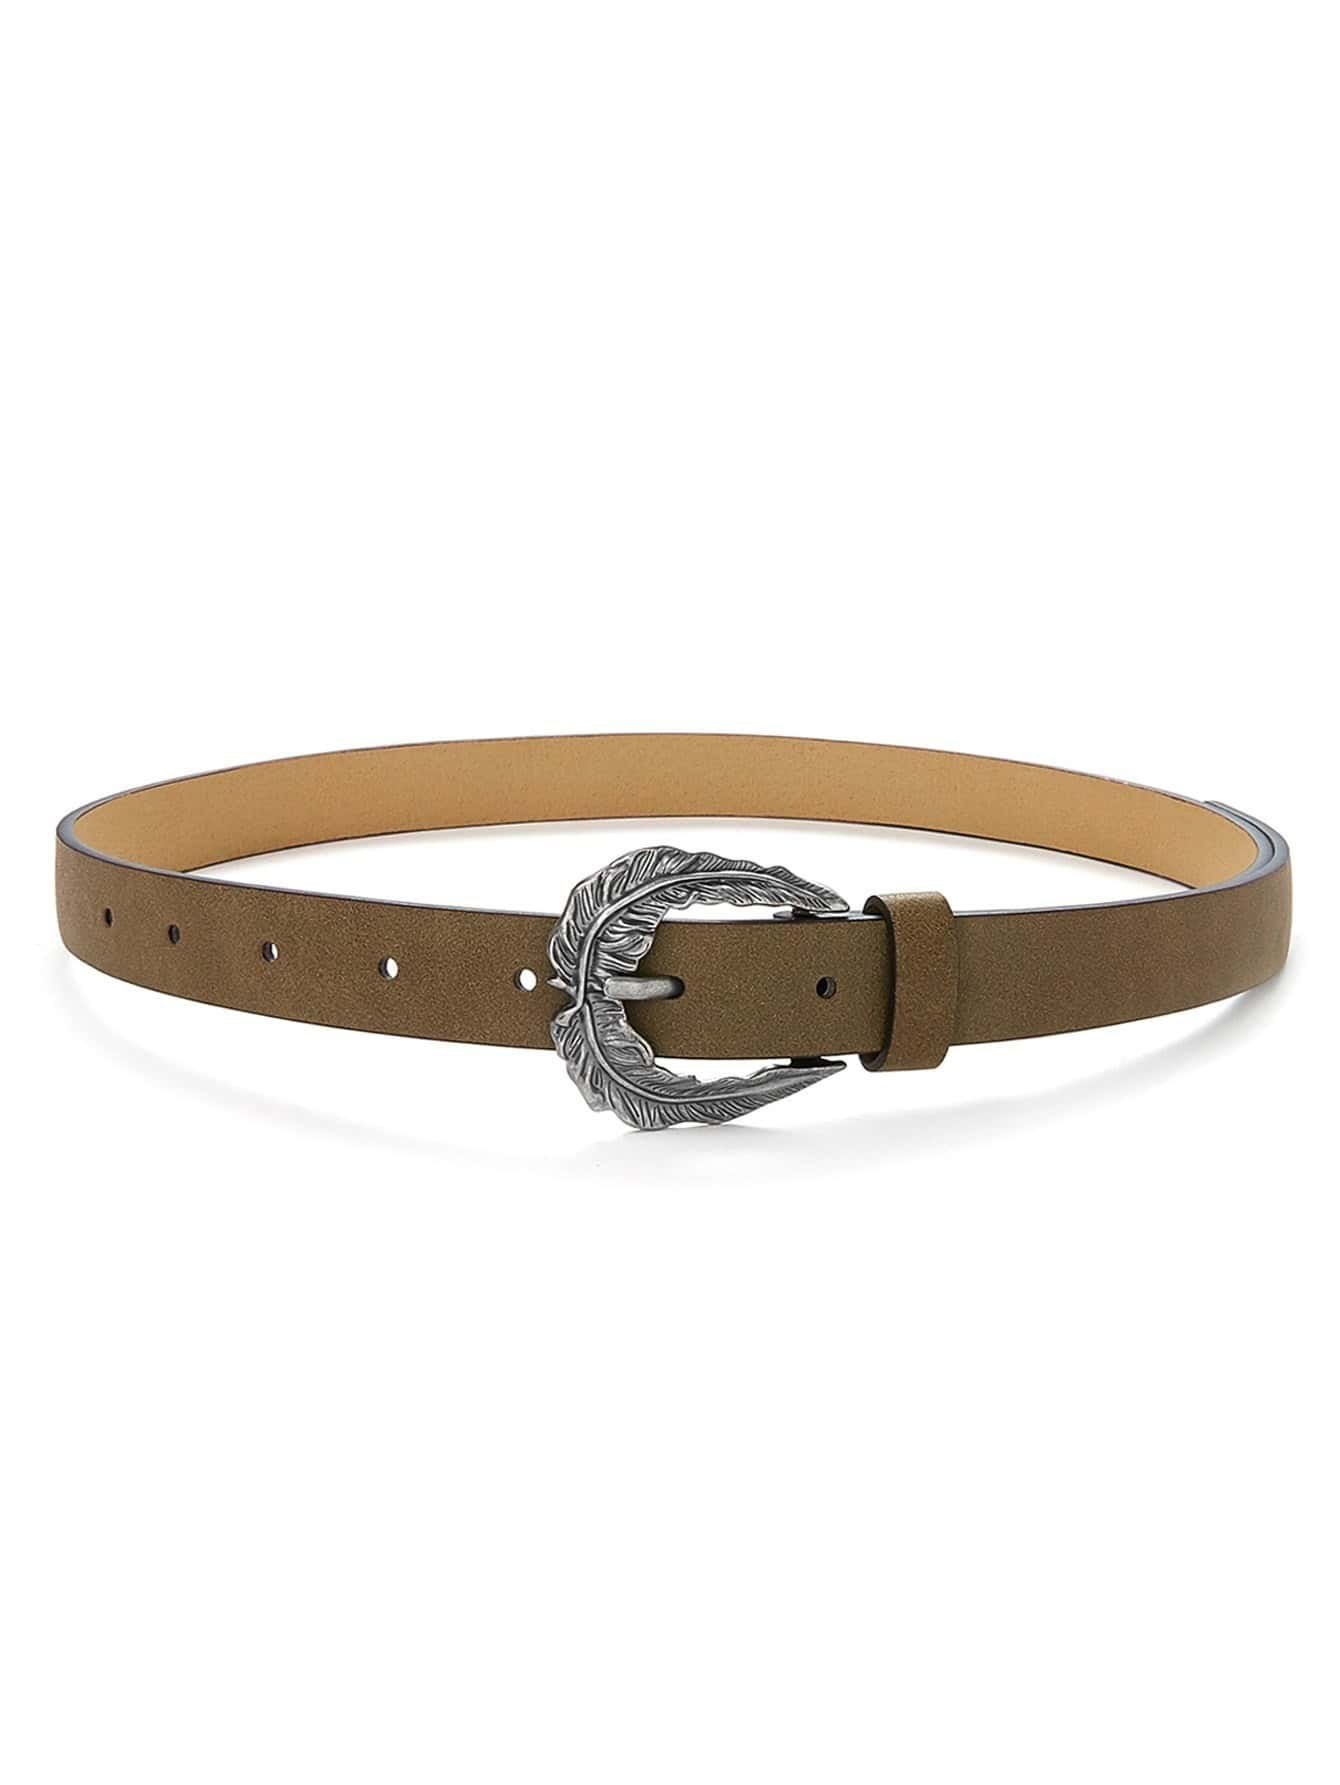 Leaf Design Buckle Belt